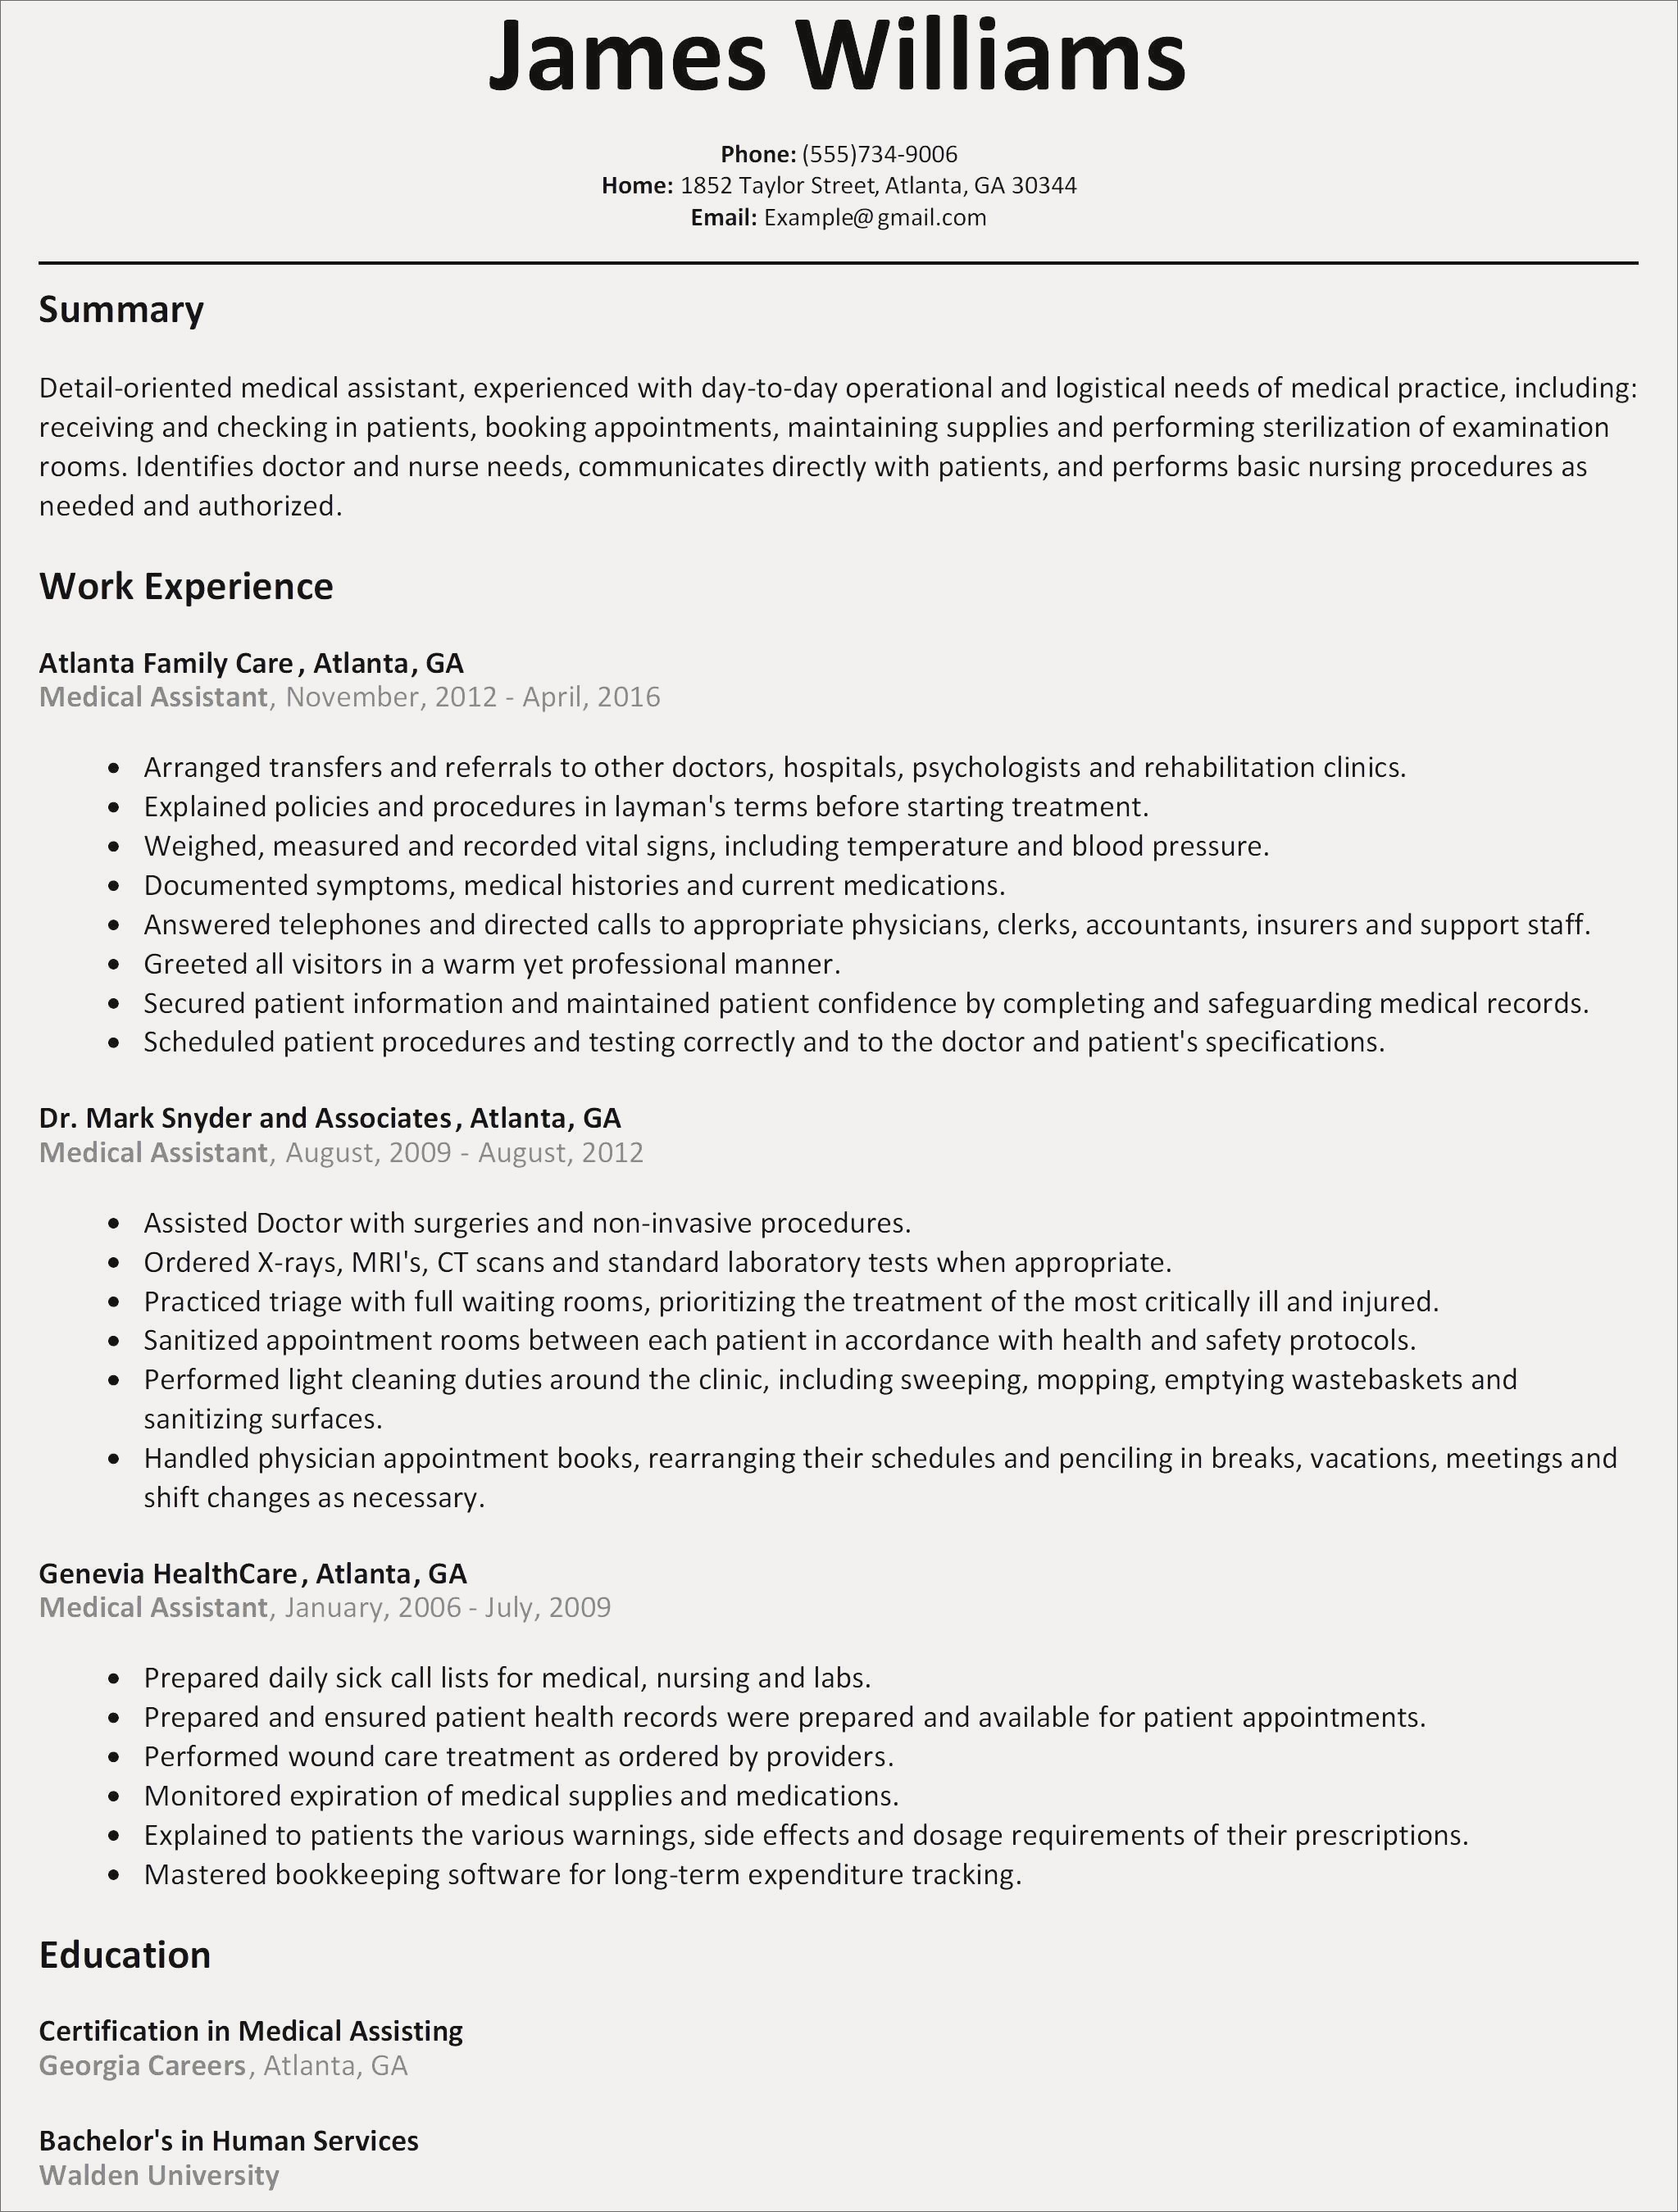 Hr Resume Template - Engineer Resume New Hr Resume Lovely Free Resume Examples Fresh